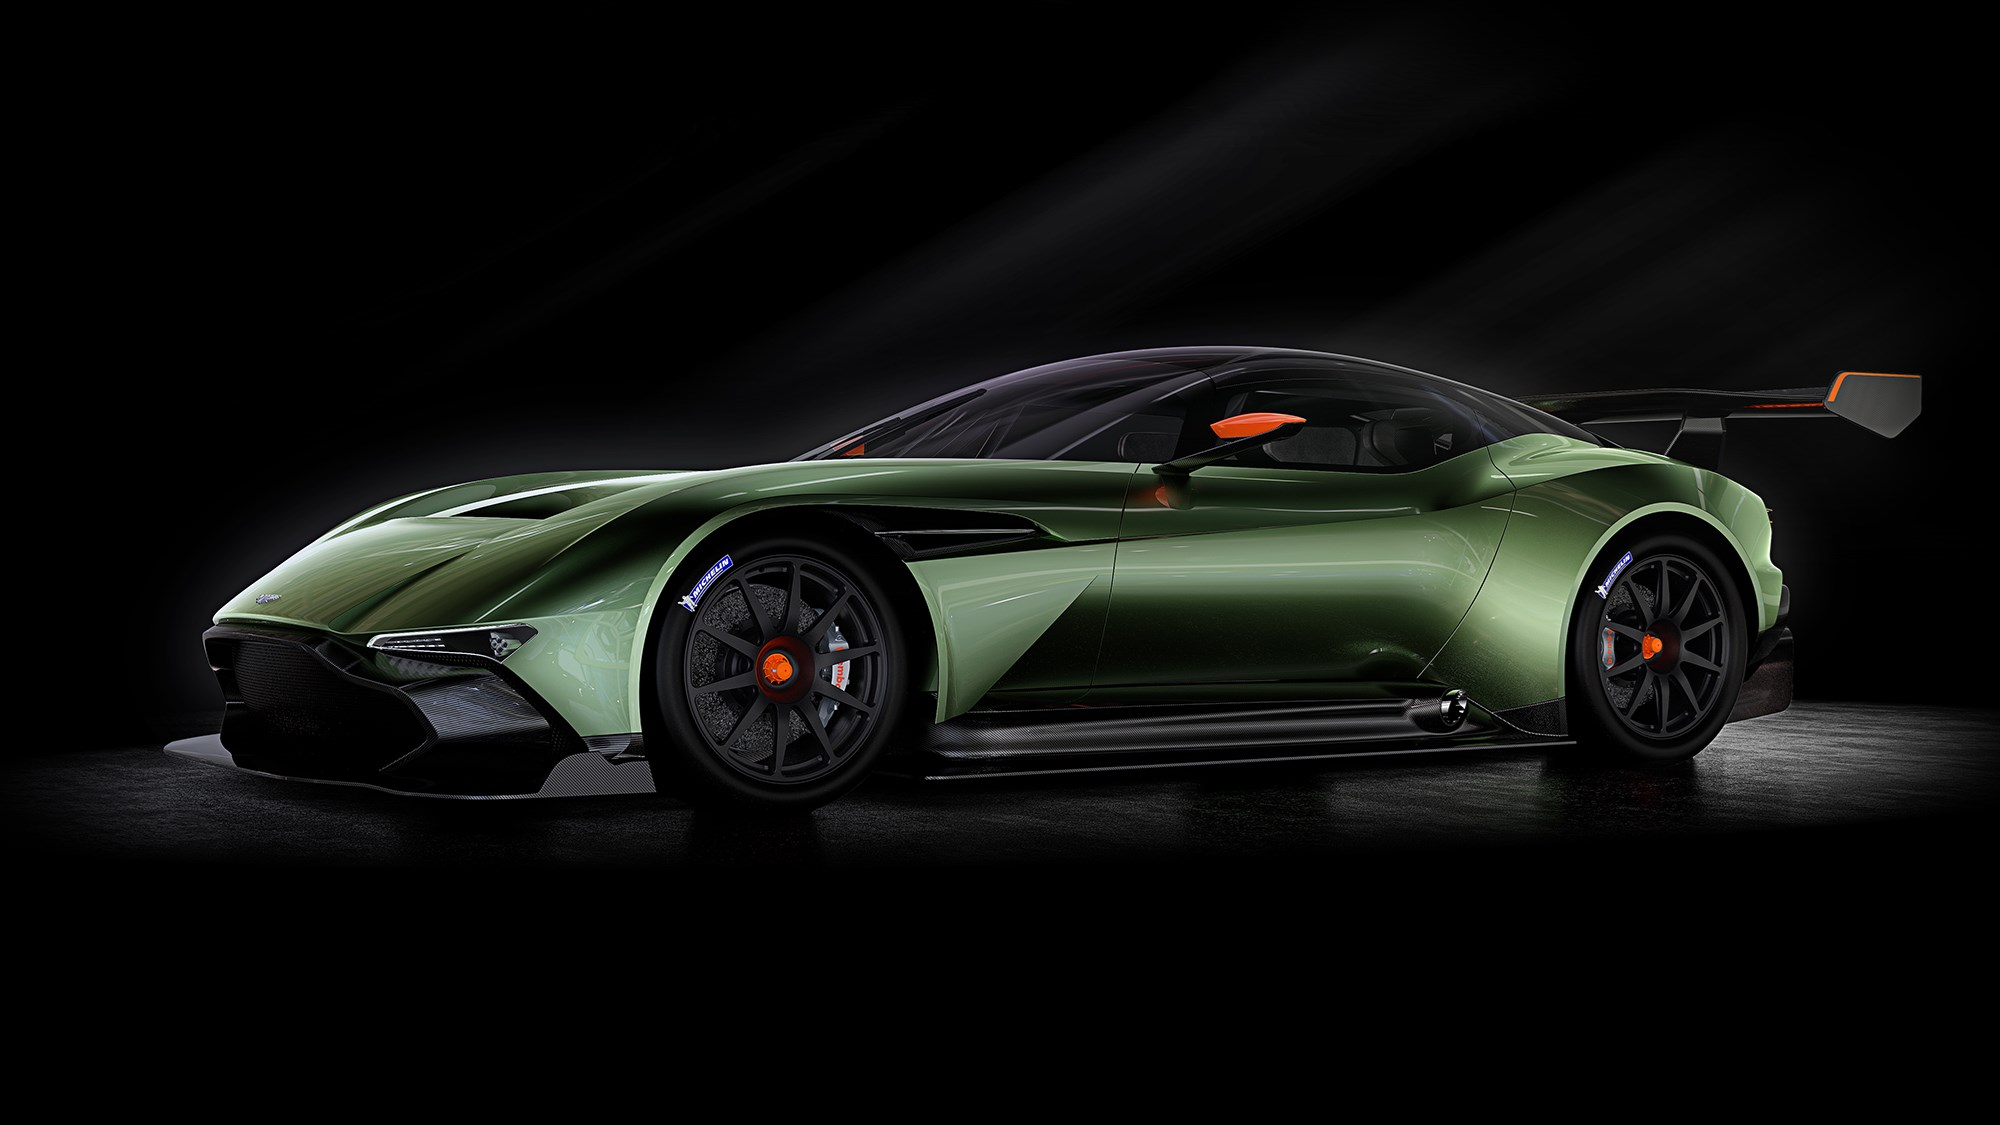 Aston Martin Vulcan Unveiled Extreme Trackday Cars For M - Aston martin cars